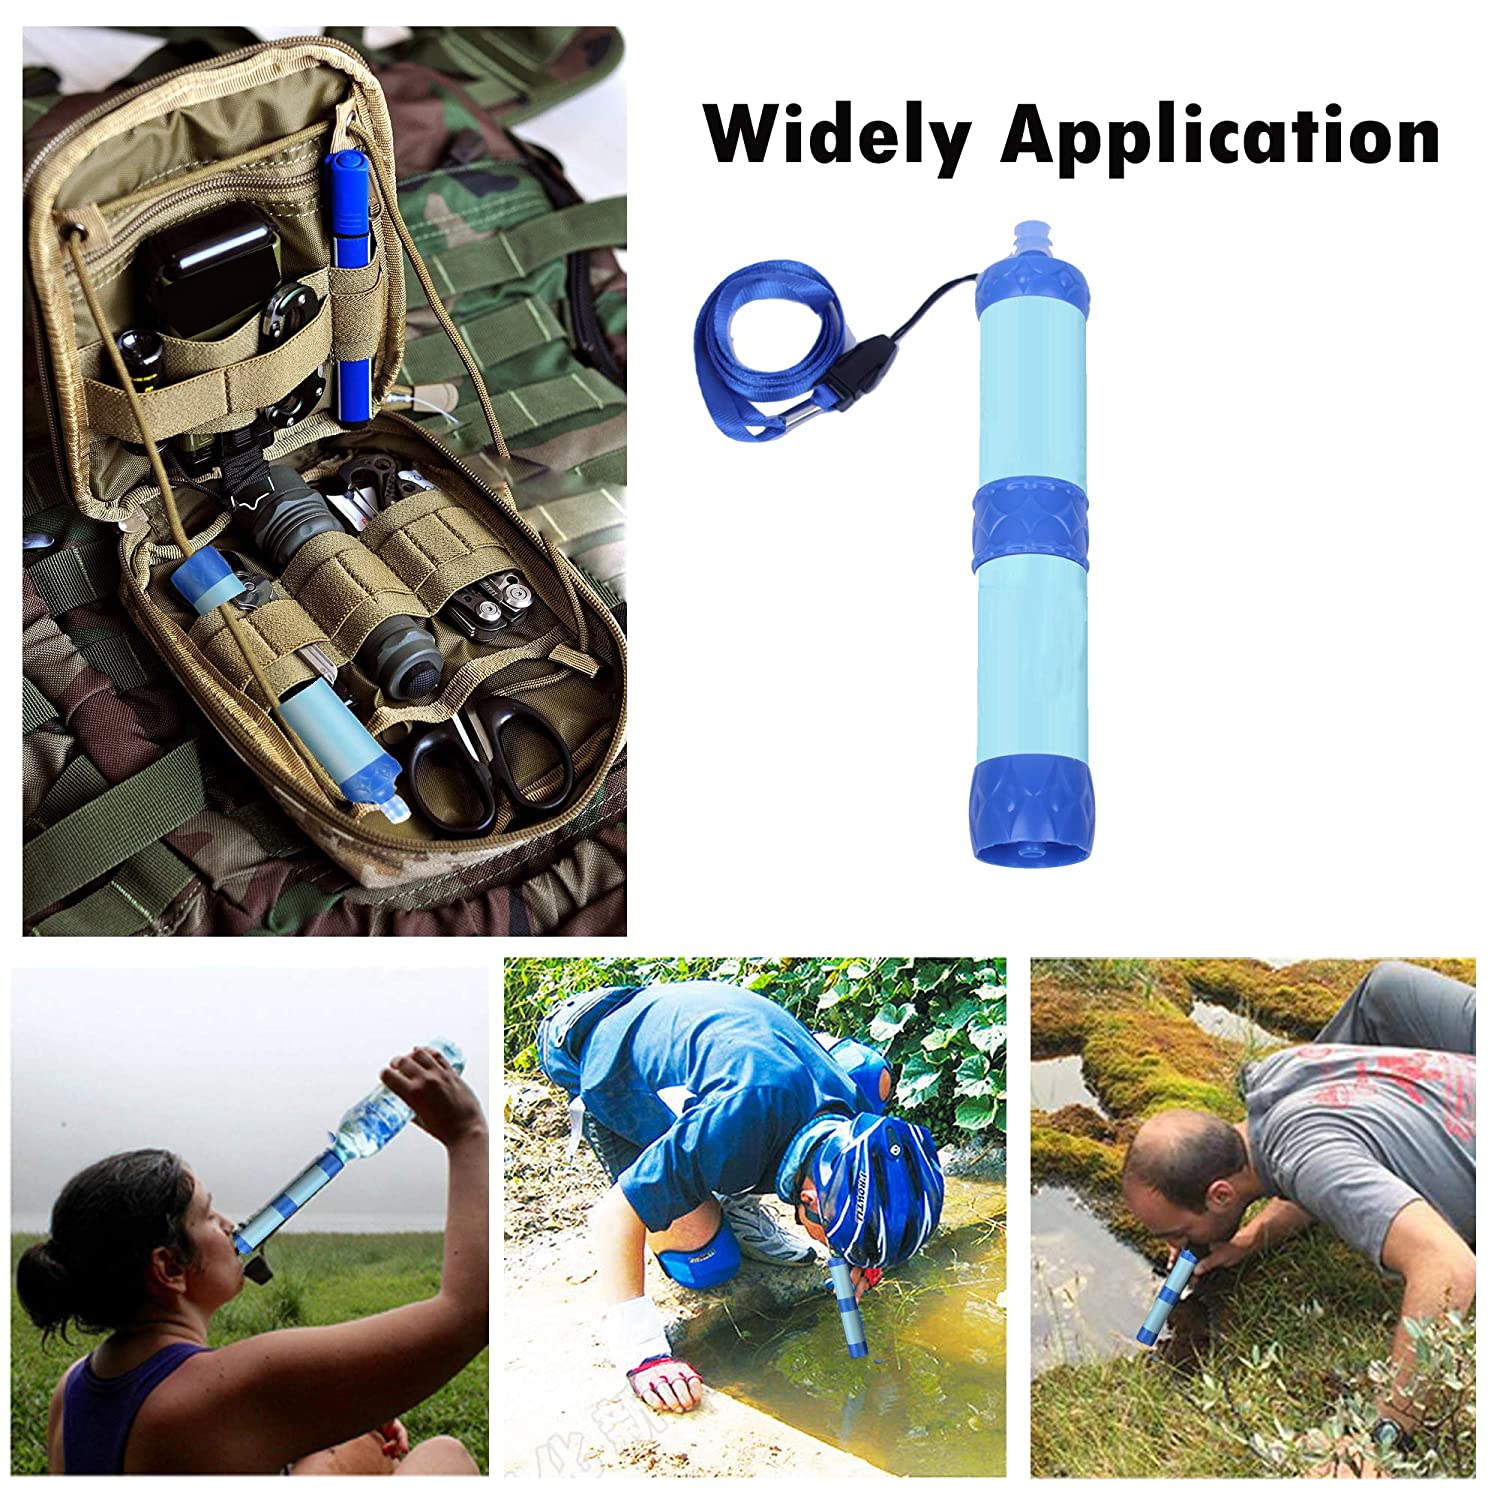 Tactical IFAK,MOLLE Admin Pouch-Mylar Blanket-5 In 1 Bracelet and Military Multitool Kit TOUROAM Adventure Survival Kit SOS First Aid Emergency Kit